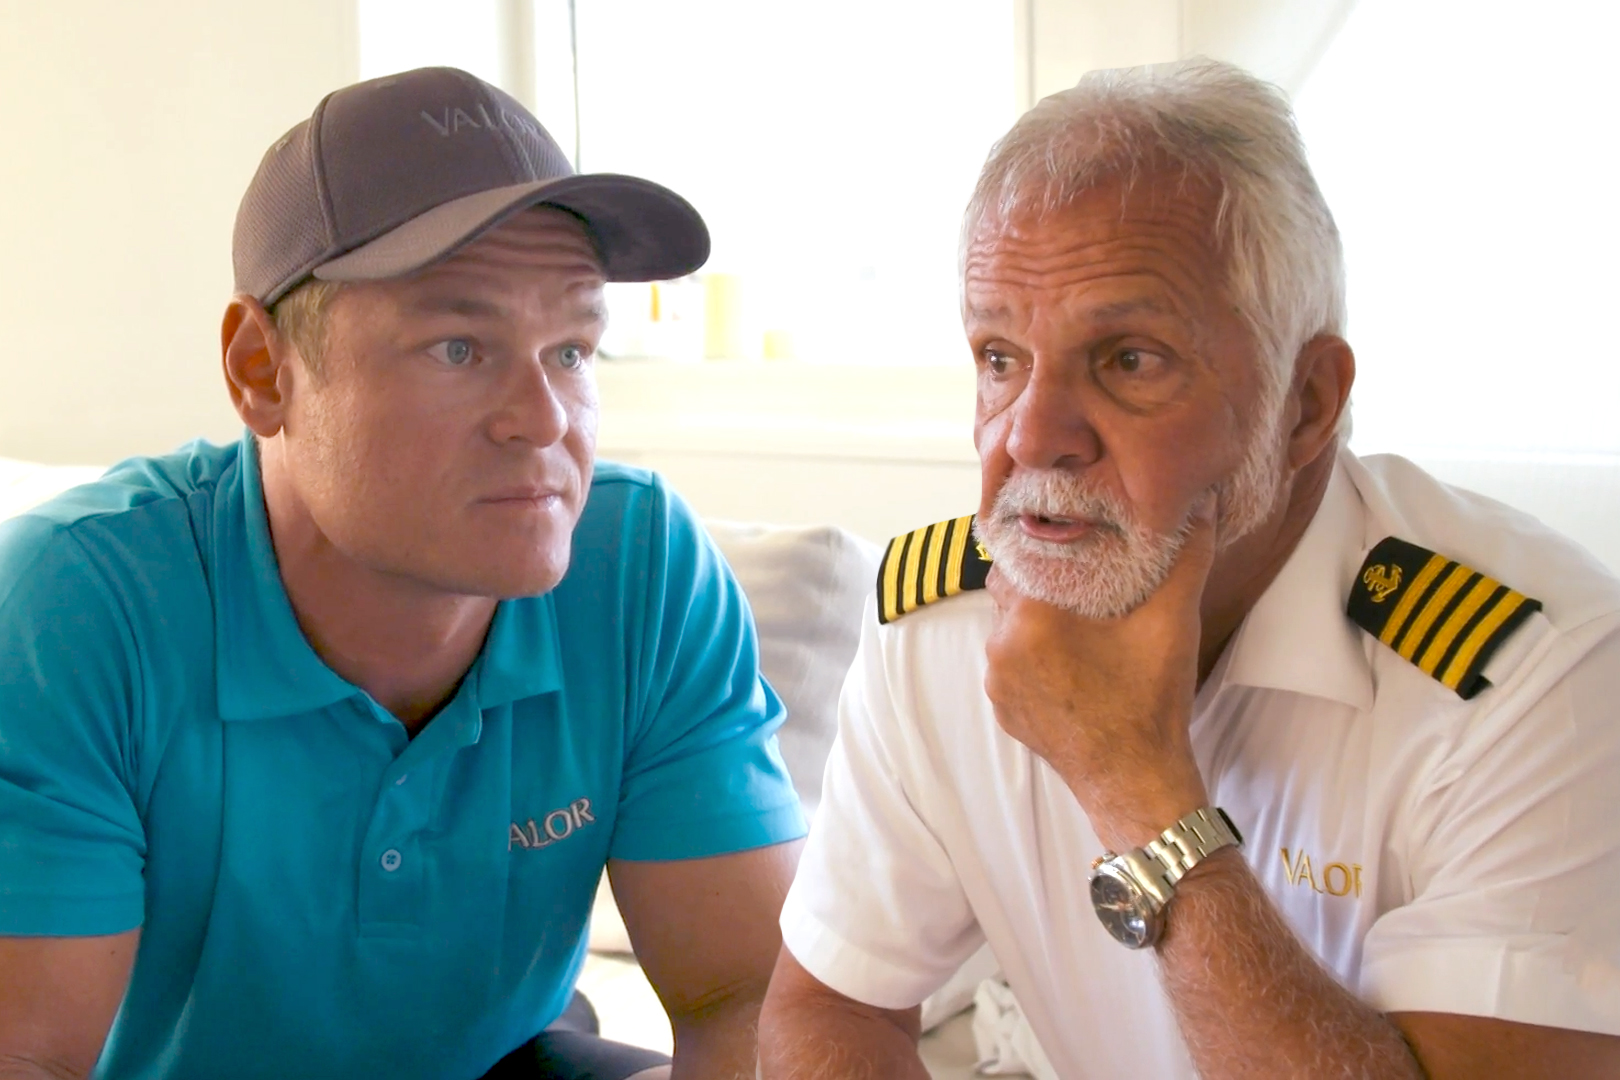 Ashton Pienaar Captain Lee Below Deck